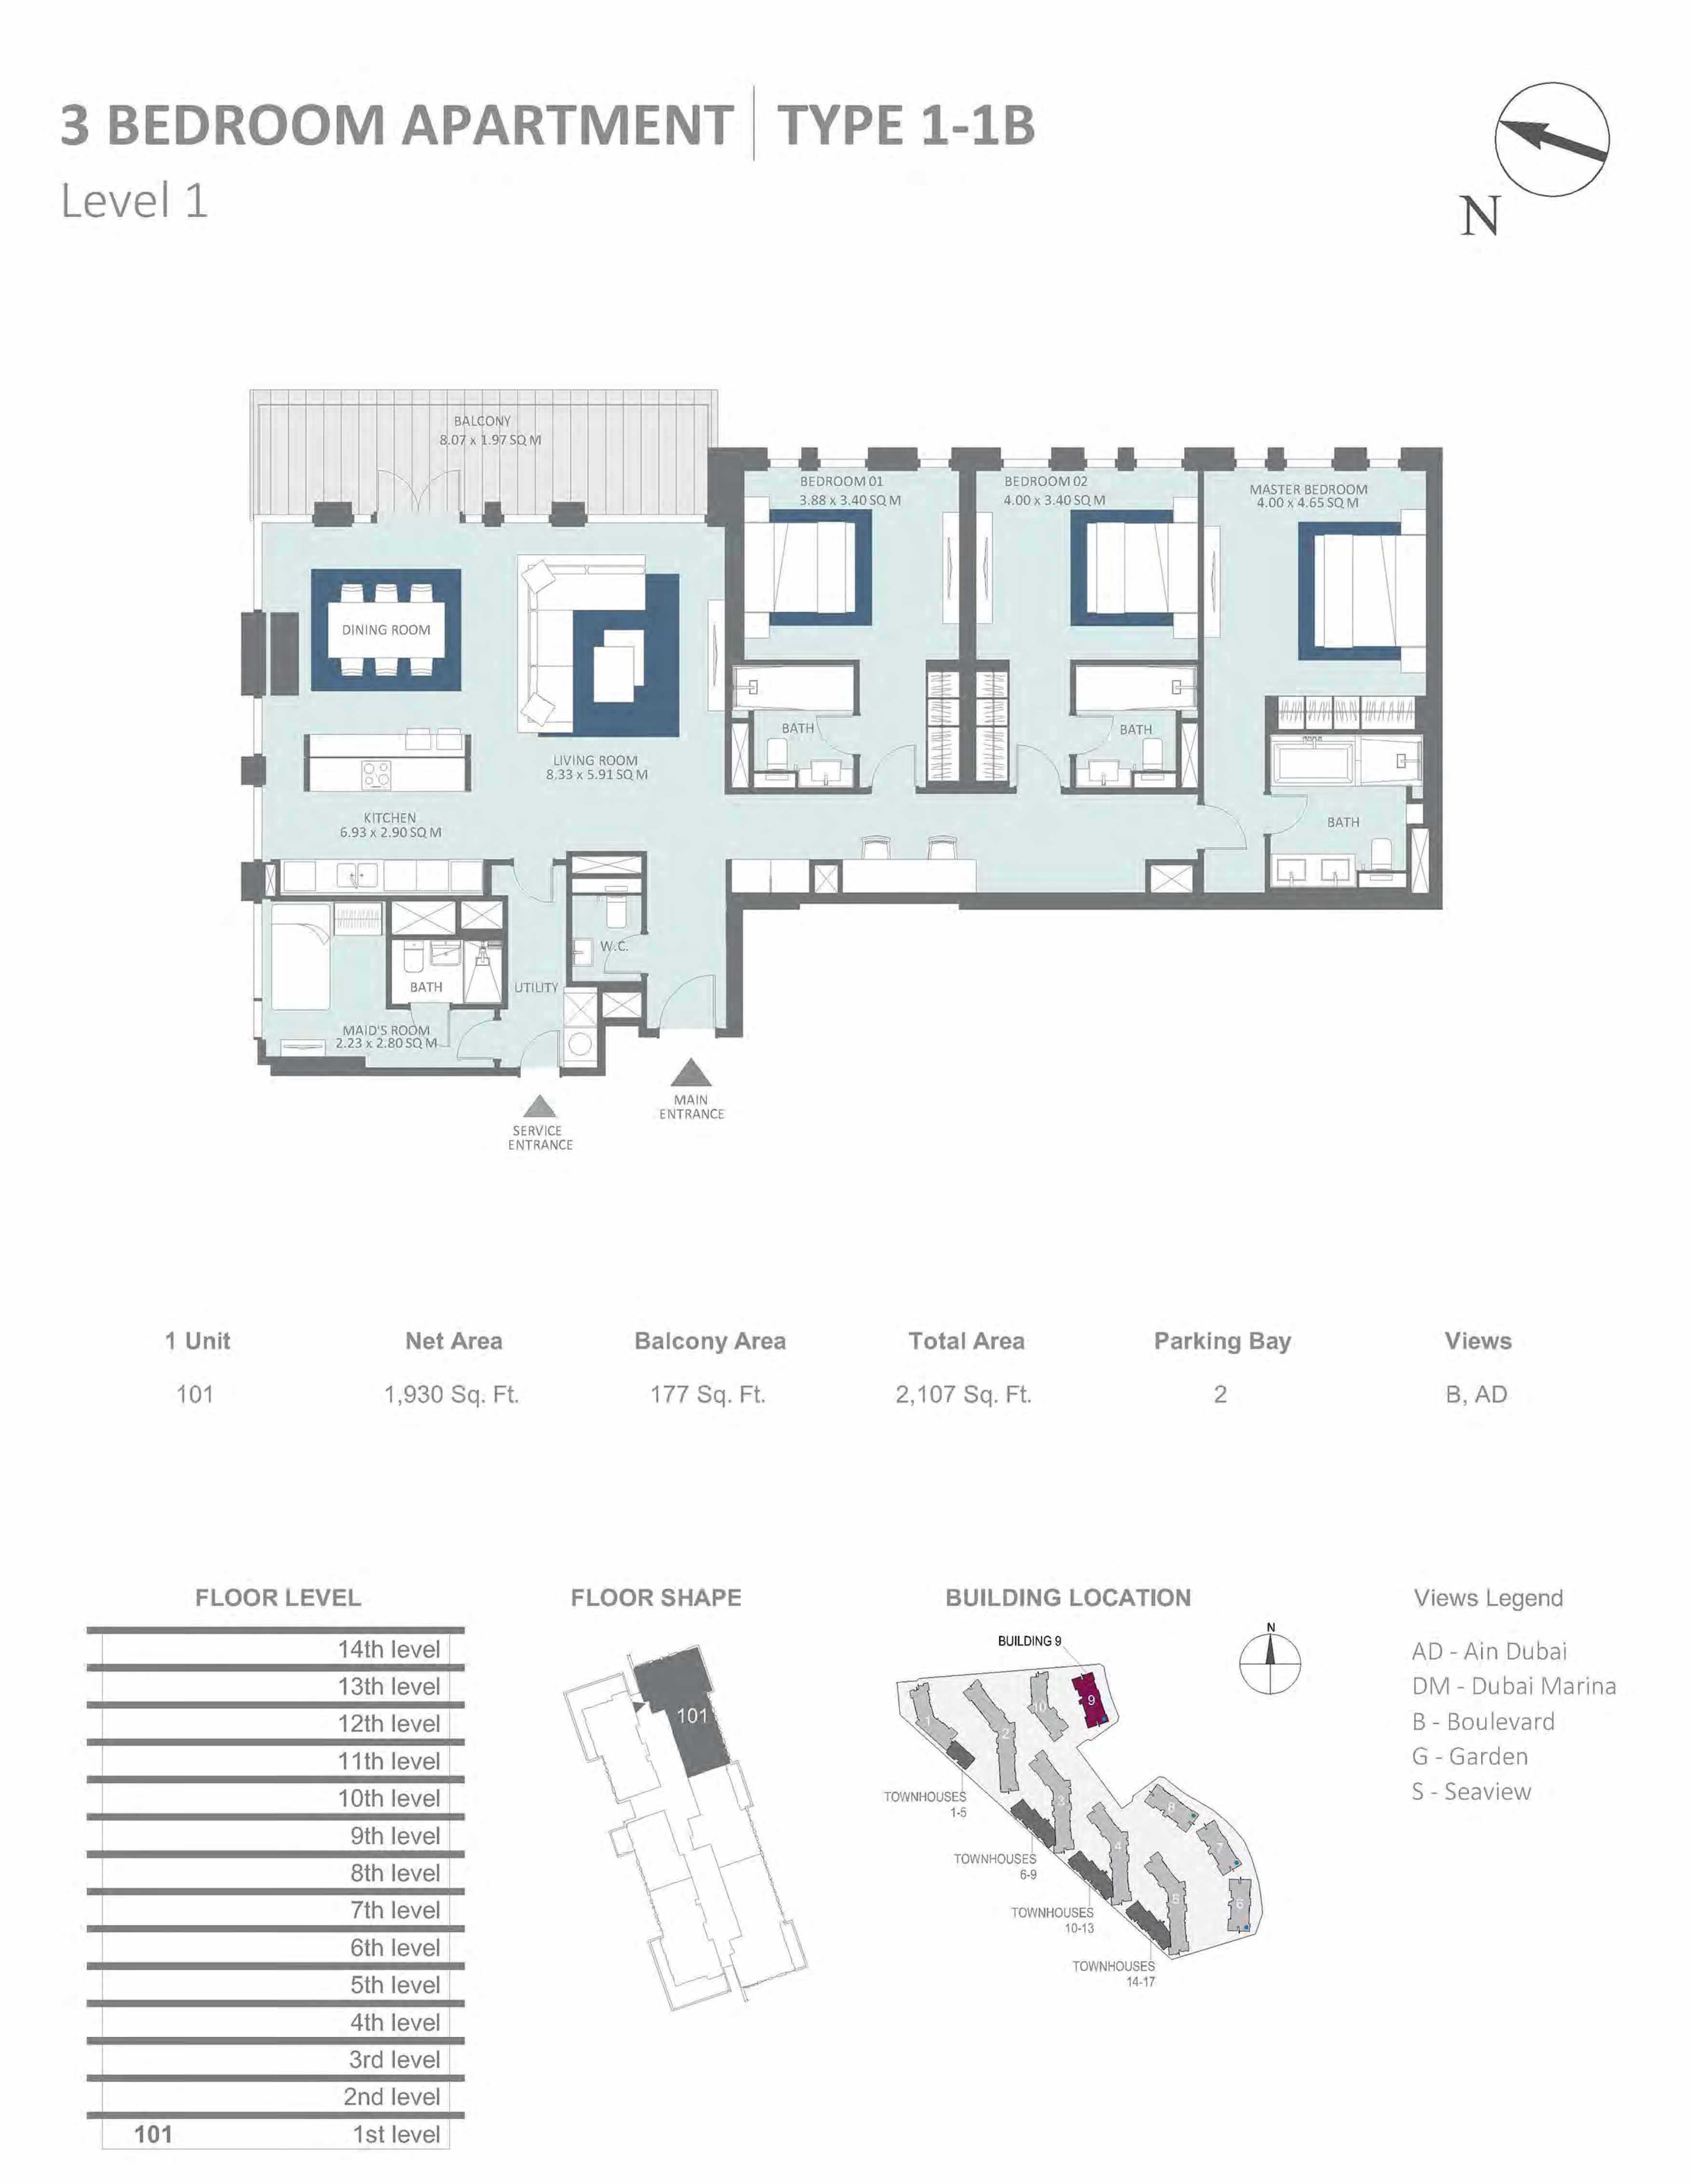 Building 9 - 3 Bedroom Type 1-1B, Level 1 Size 2107 sq.ft